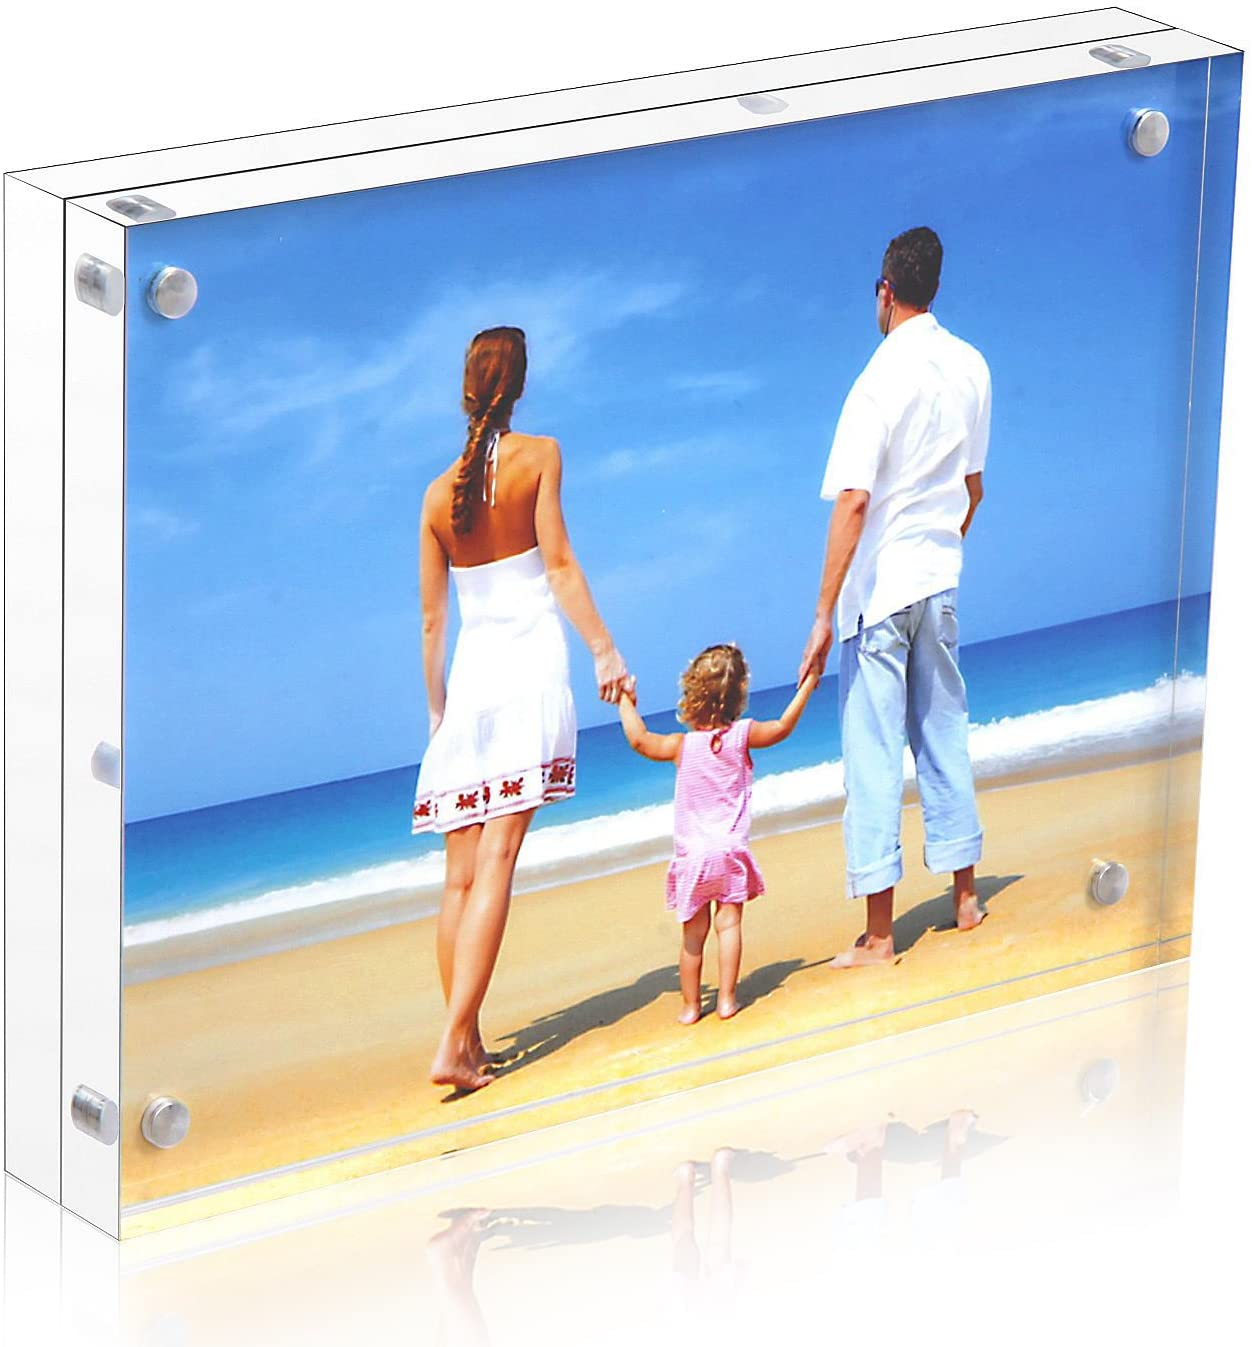 NIUBEE Acrylic Picture Frame 5x7, 20% Thicker Block Clear Double Sided Acrylic Photo Frames Frameless Desktop Display with Gift Box Package